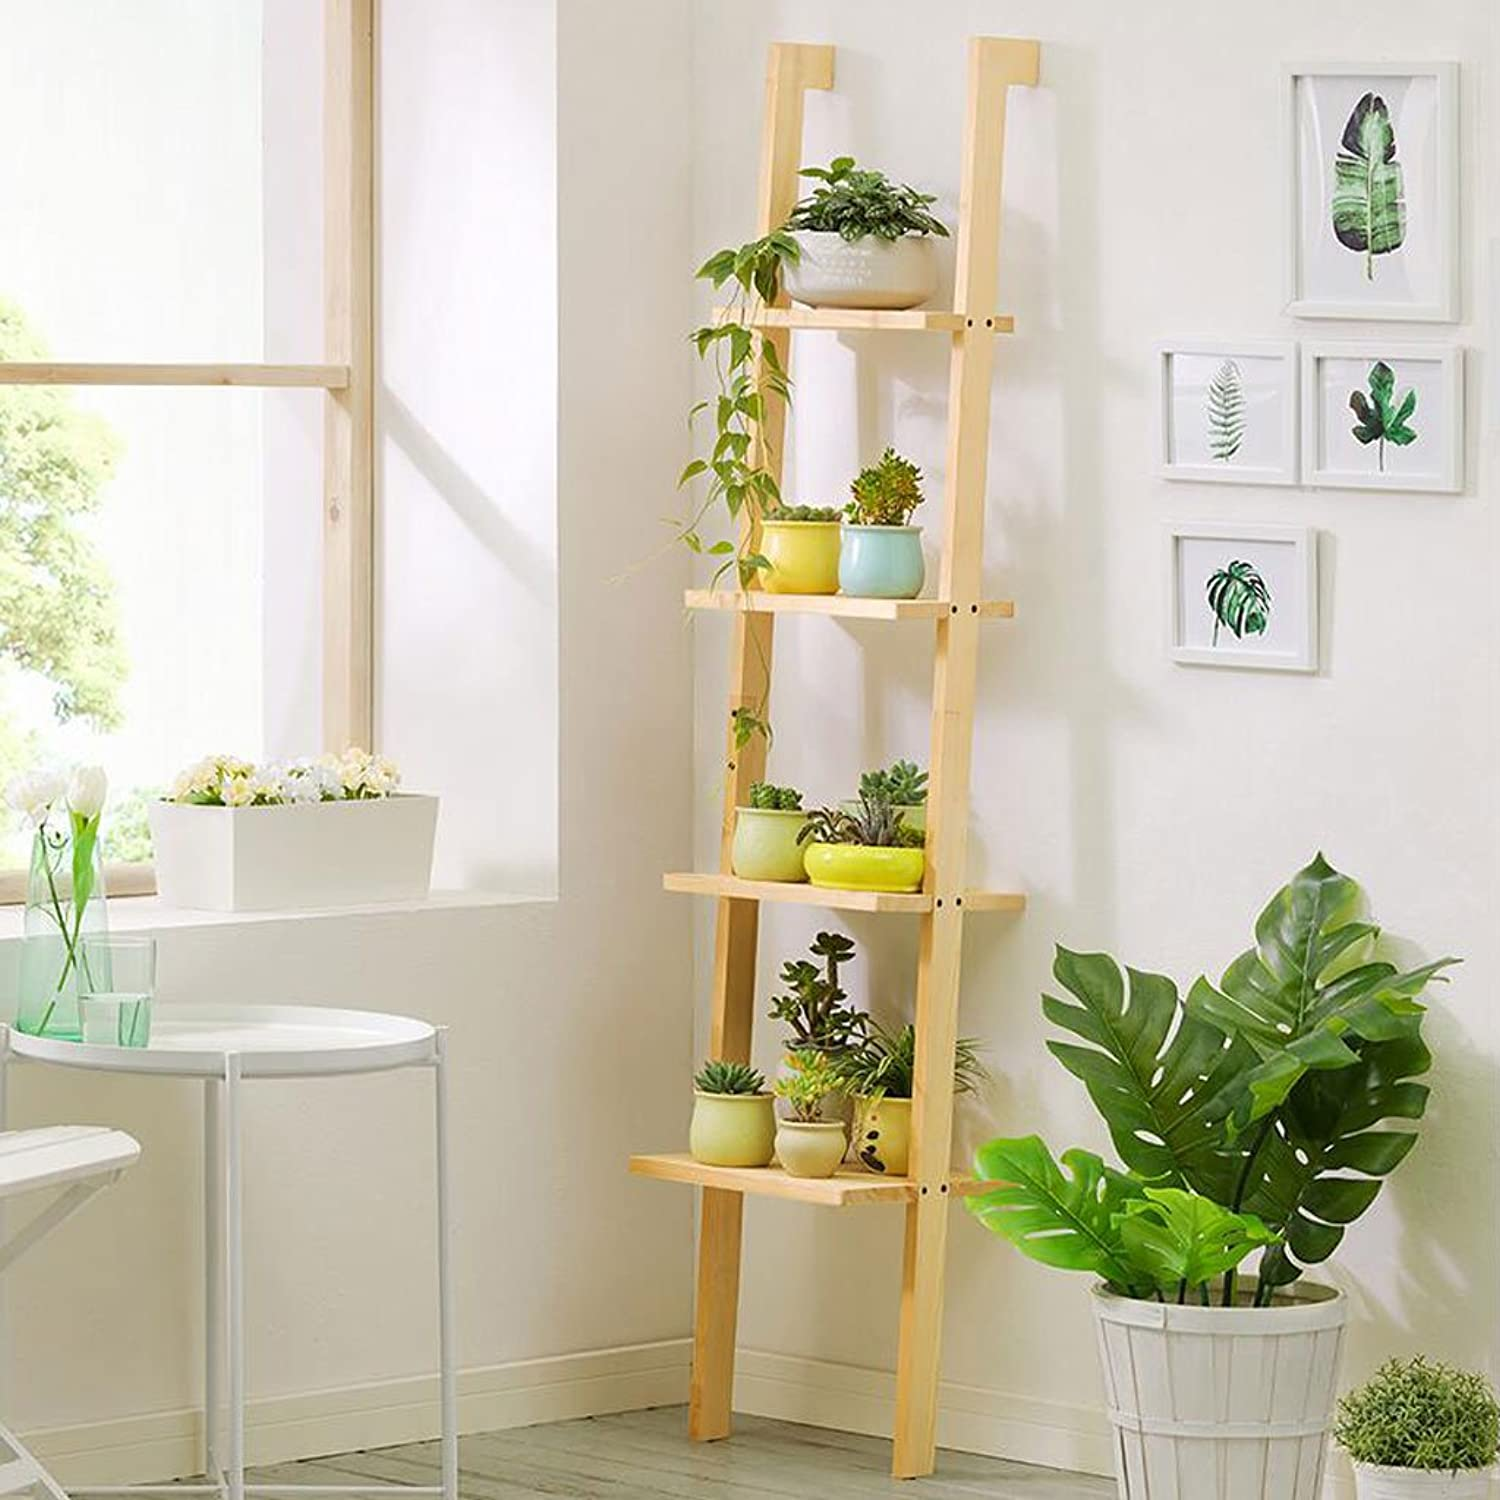 Flower stand Trapezoidal flower stand Indoor Balcony flower stand Multi-Layer Floor Shelf Three-Dimensional flower stand Solid Wood Material (color   B)